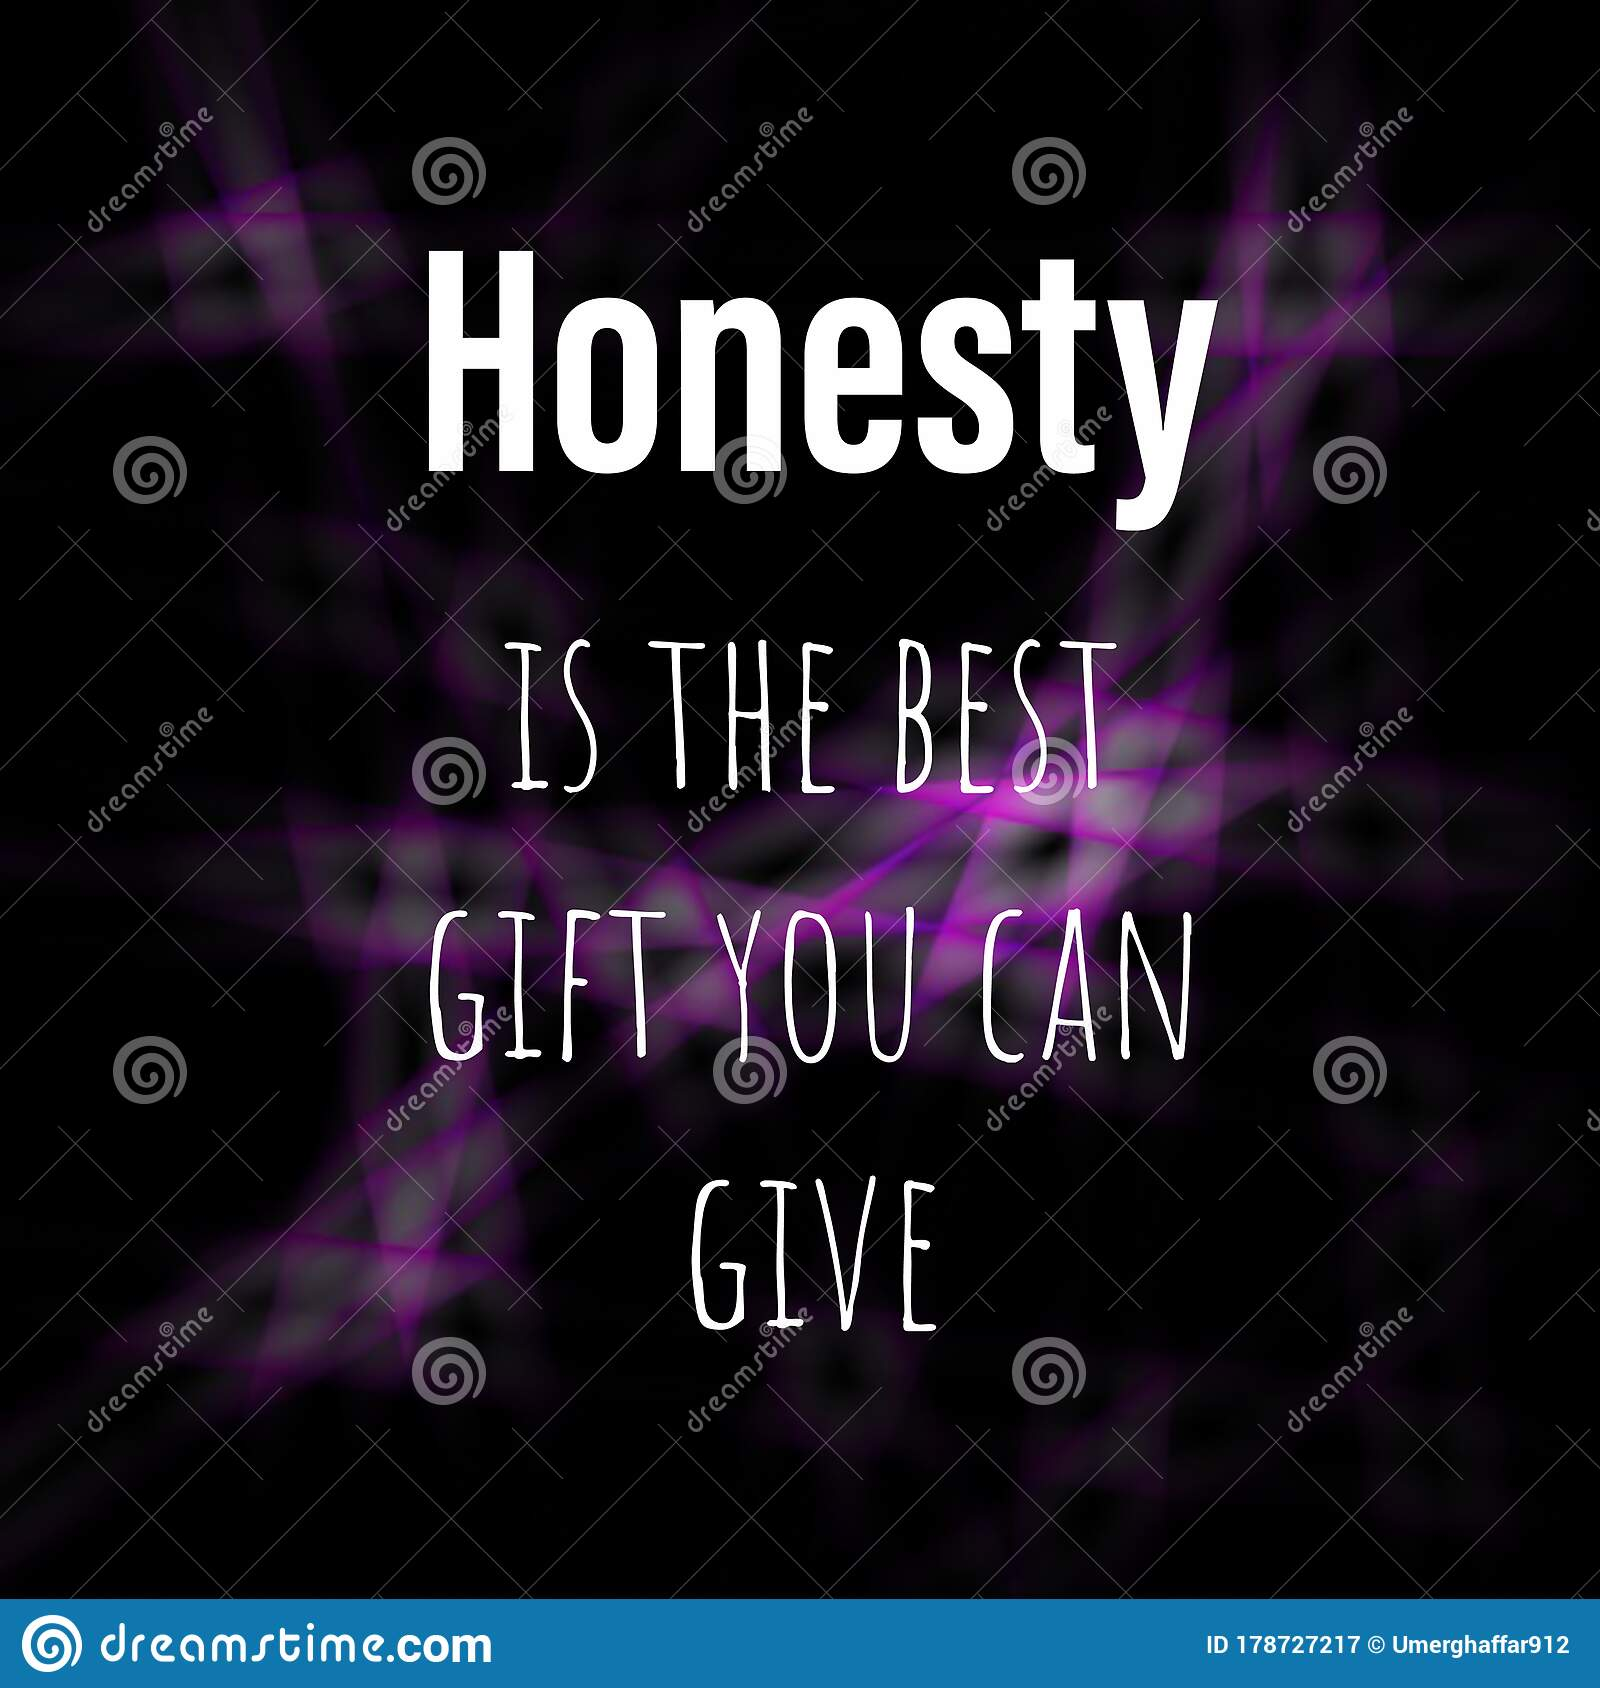 Virtual And Inspirational Quote About Honesty Stock Illustration Illustration Of Life Motivational 178727217